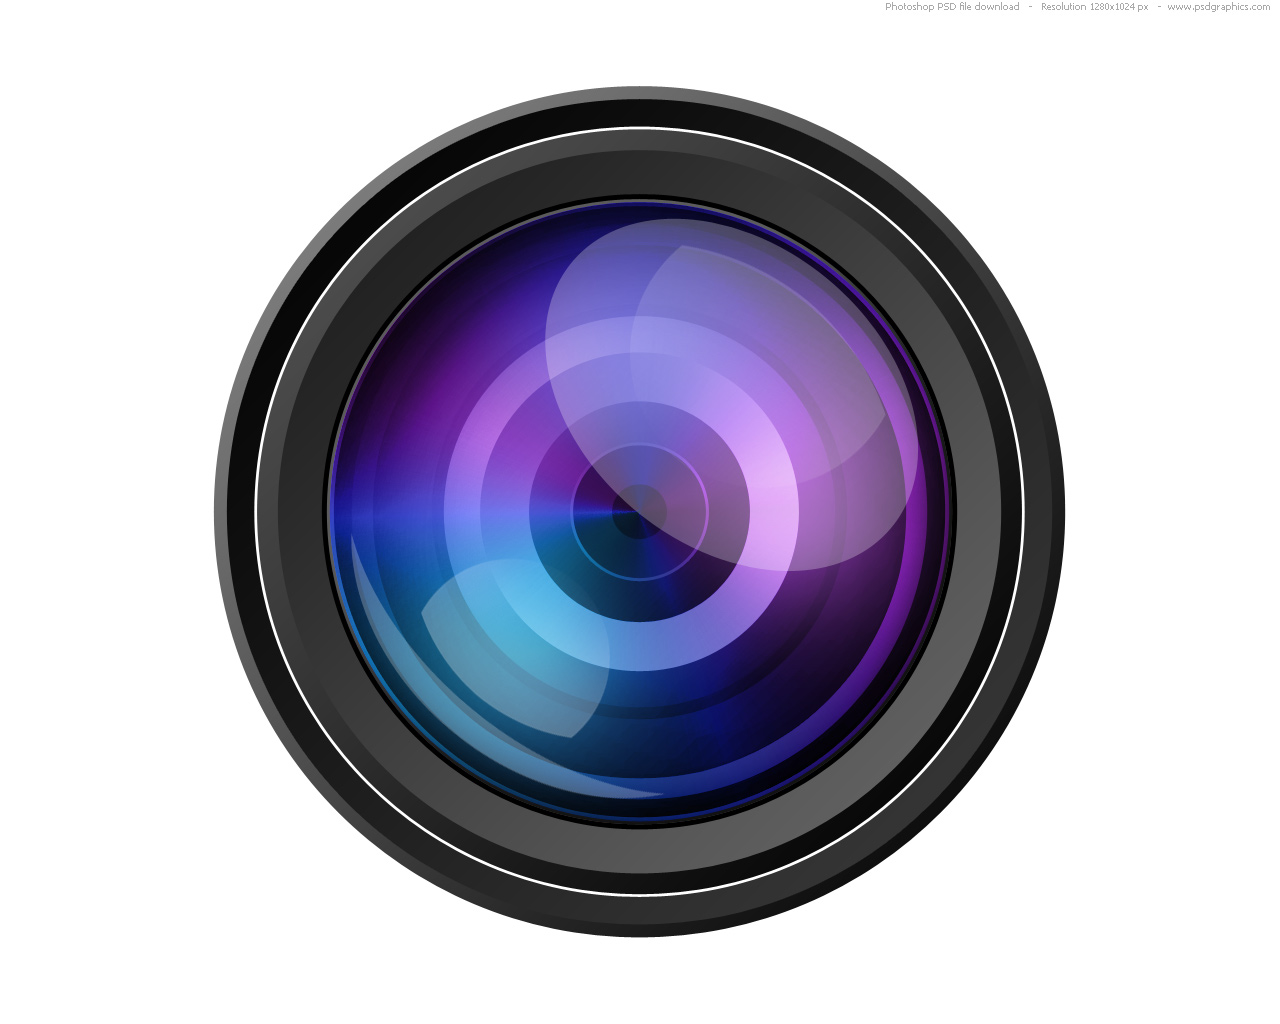 Full size –  preview: camera lens icon